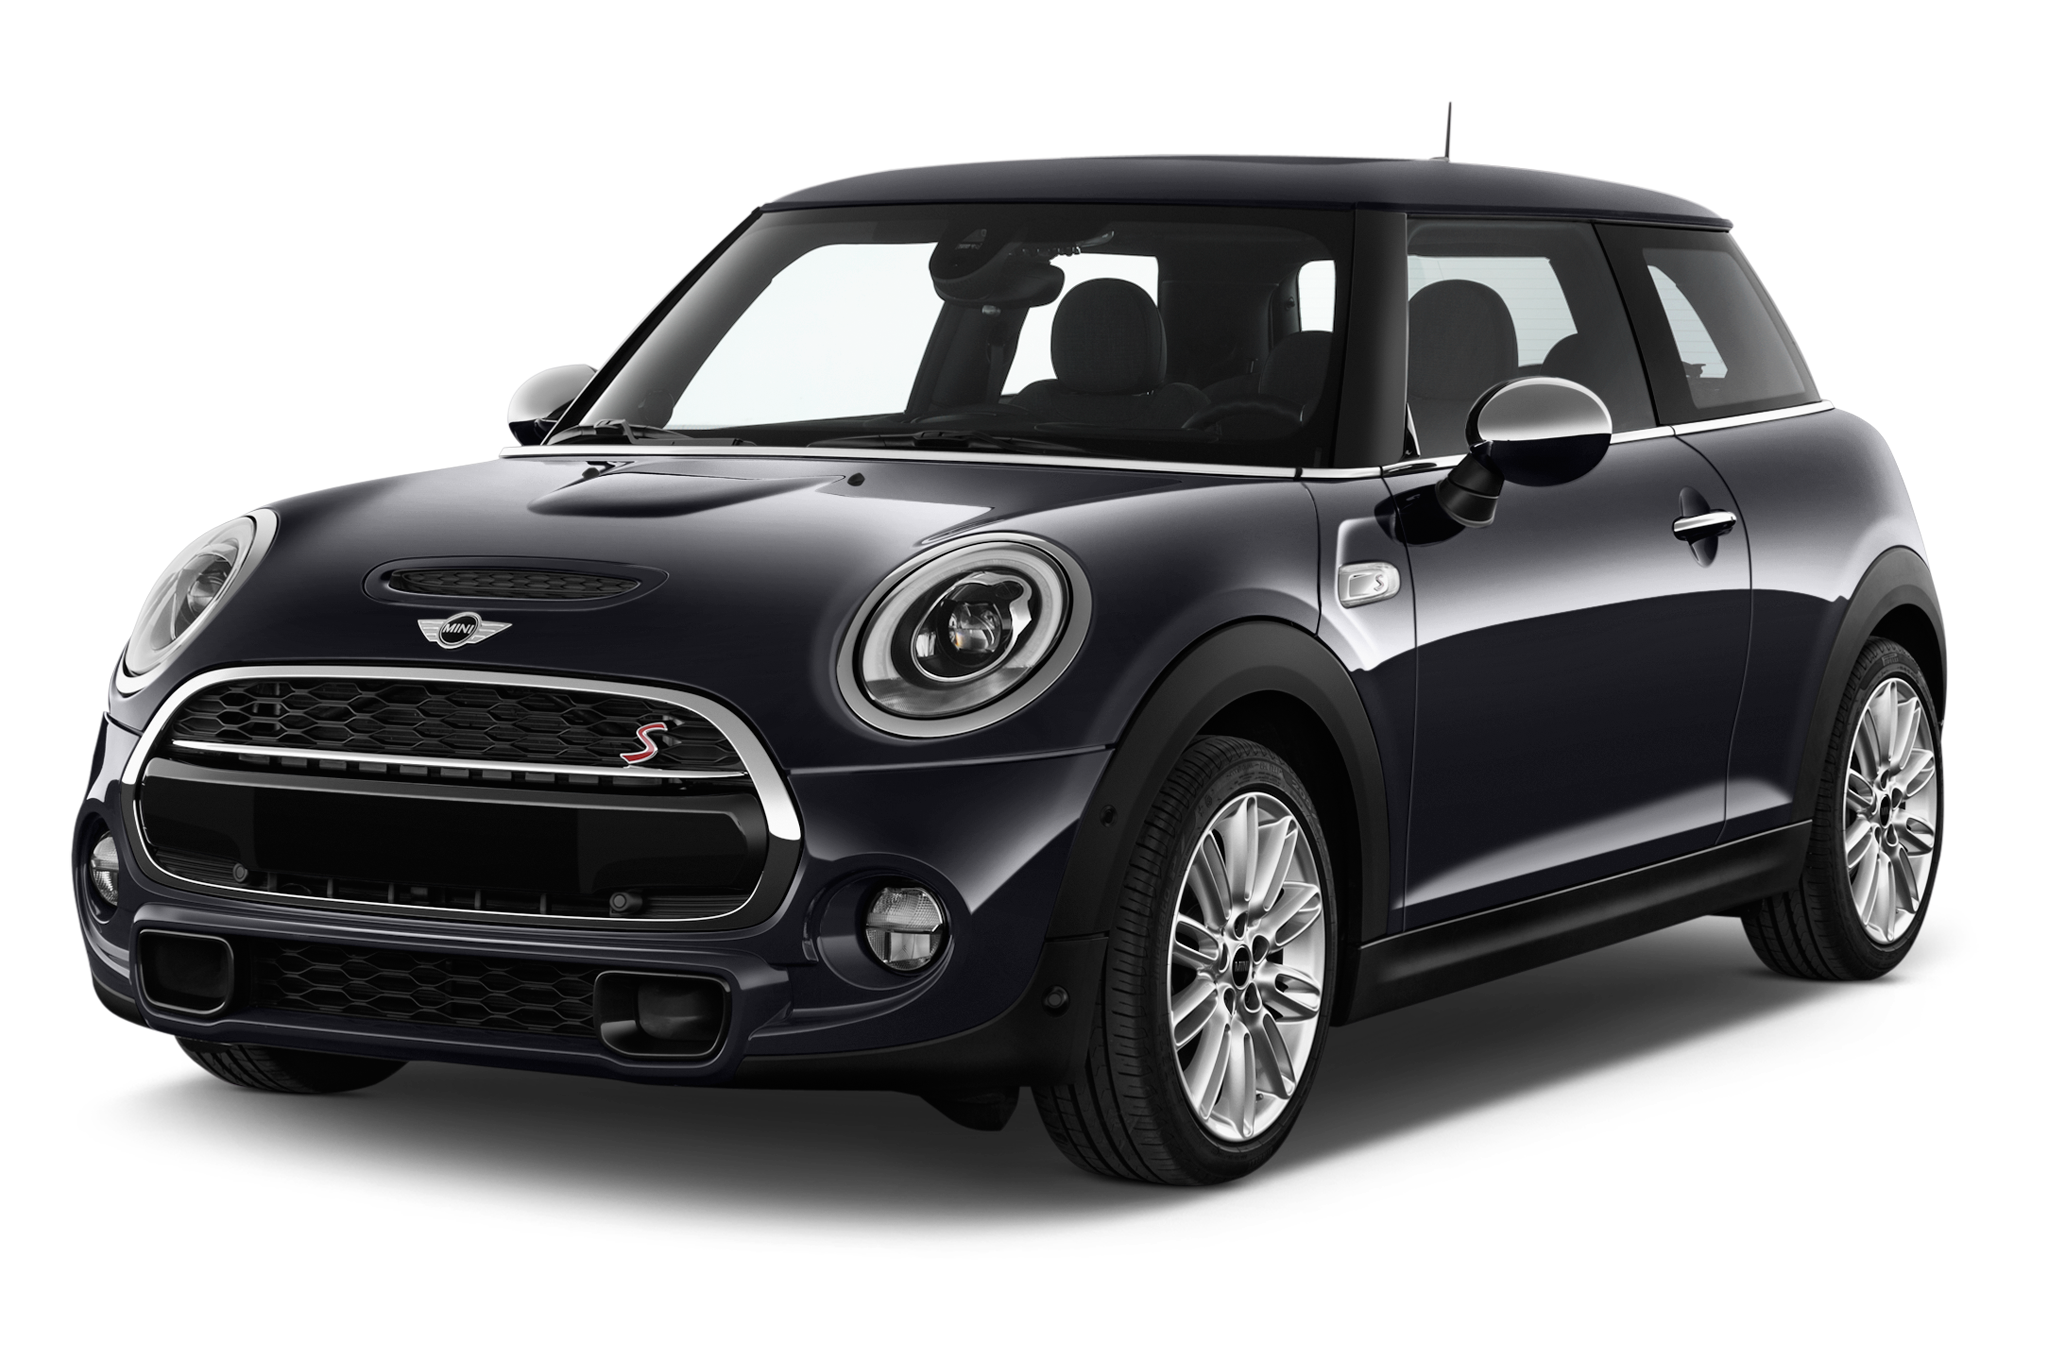 2018 mini cooper s john cooper challenge car photos catalog 2018. Black Bedroom Furniture Sets. Home Design Ideas